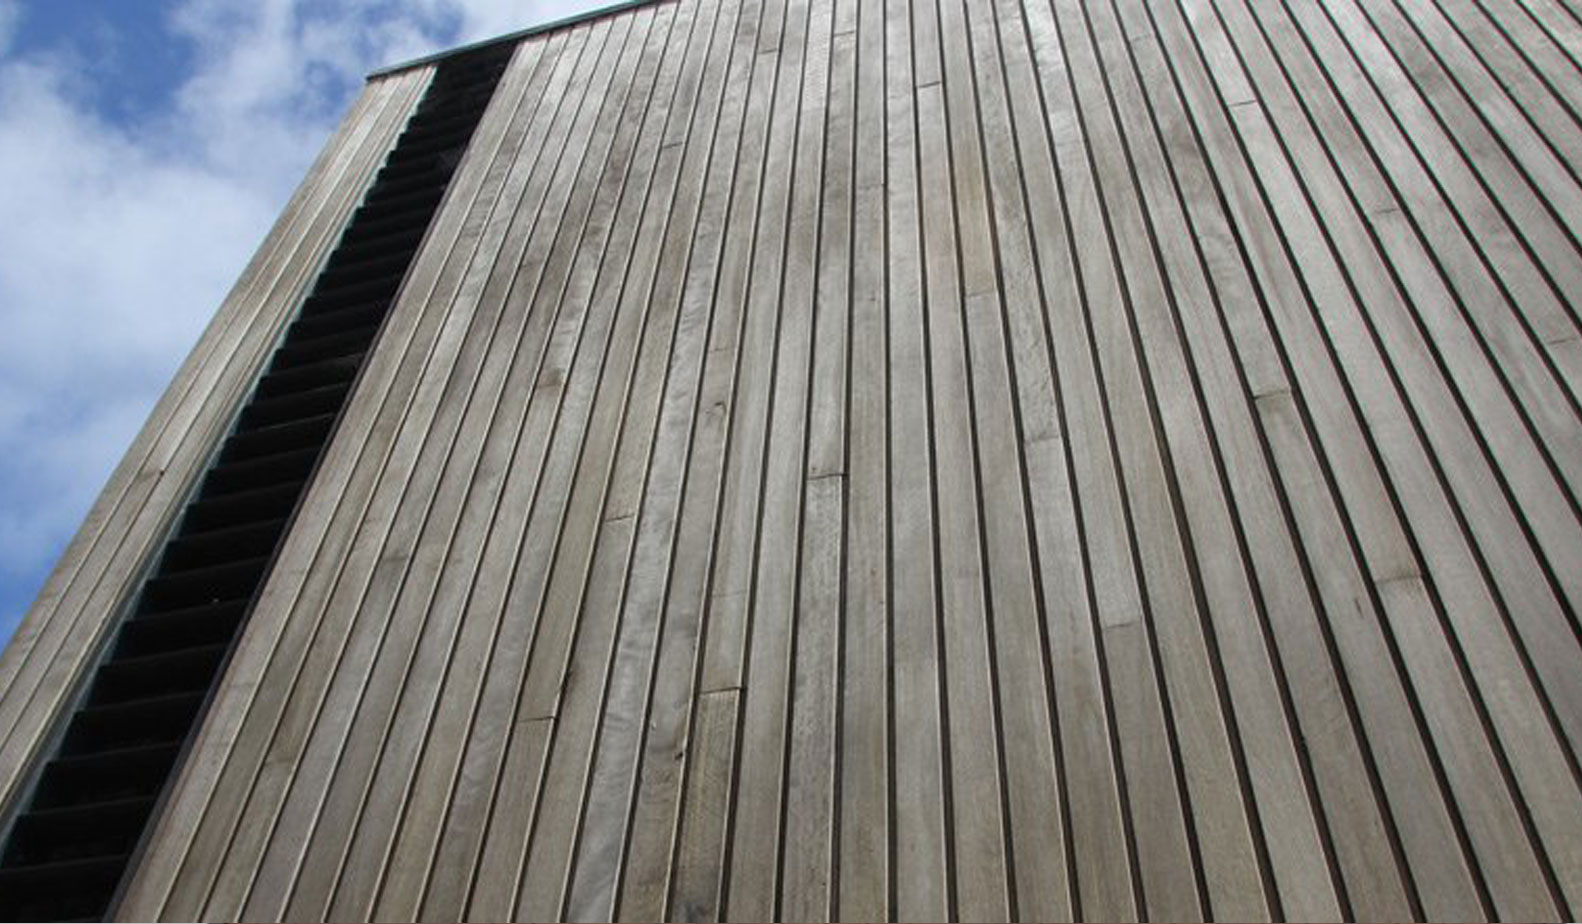 Hardwood Cladding Melbourne